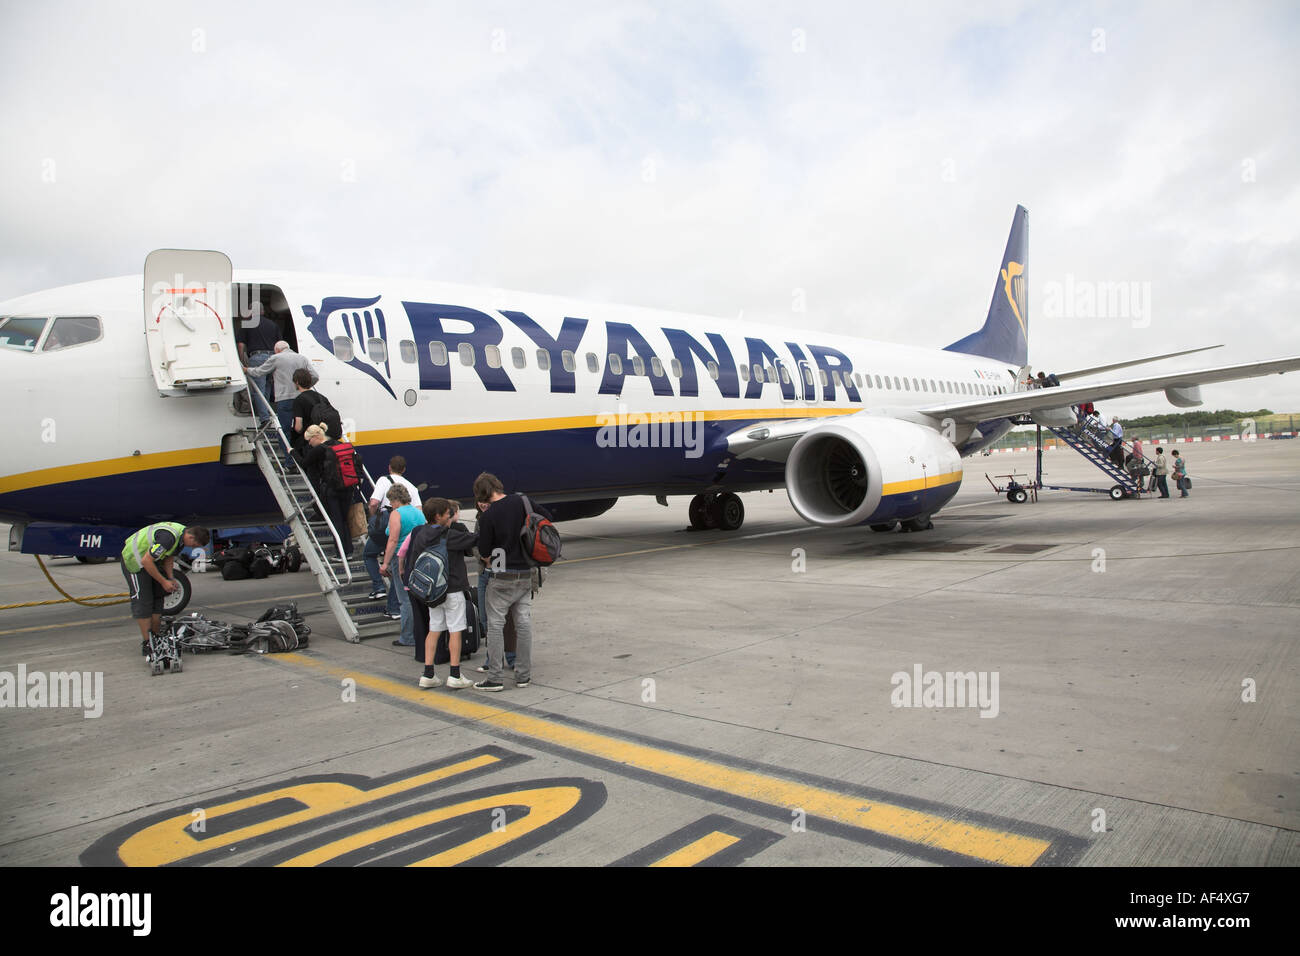 Ryanair plane with passengers boarding - Stock Image